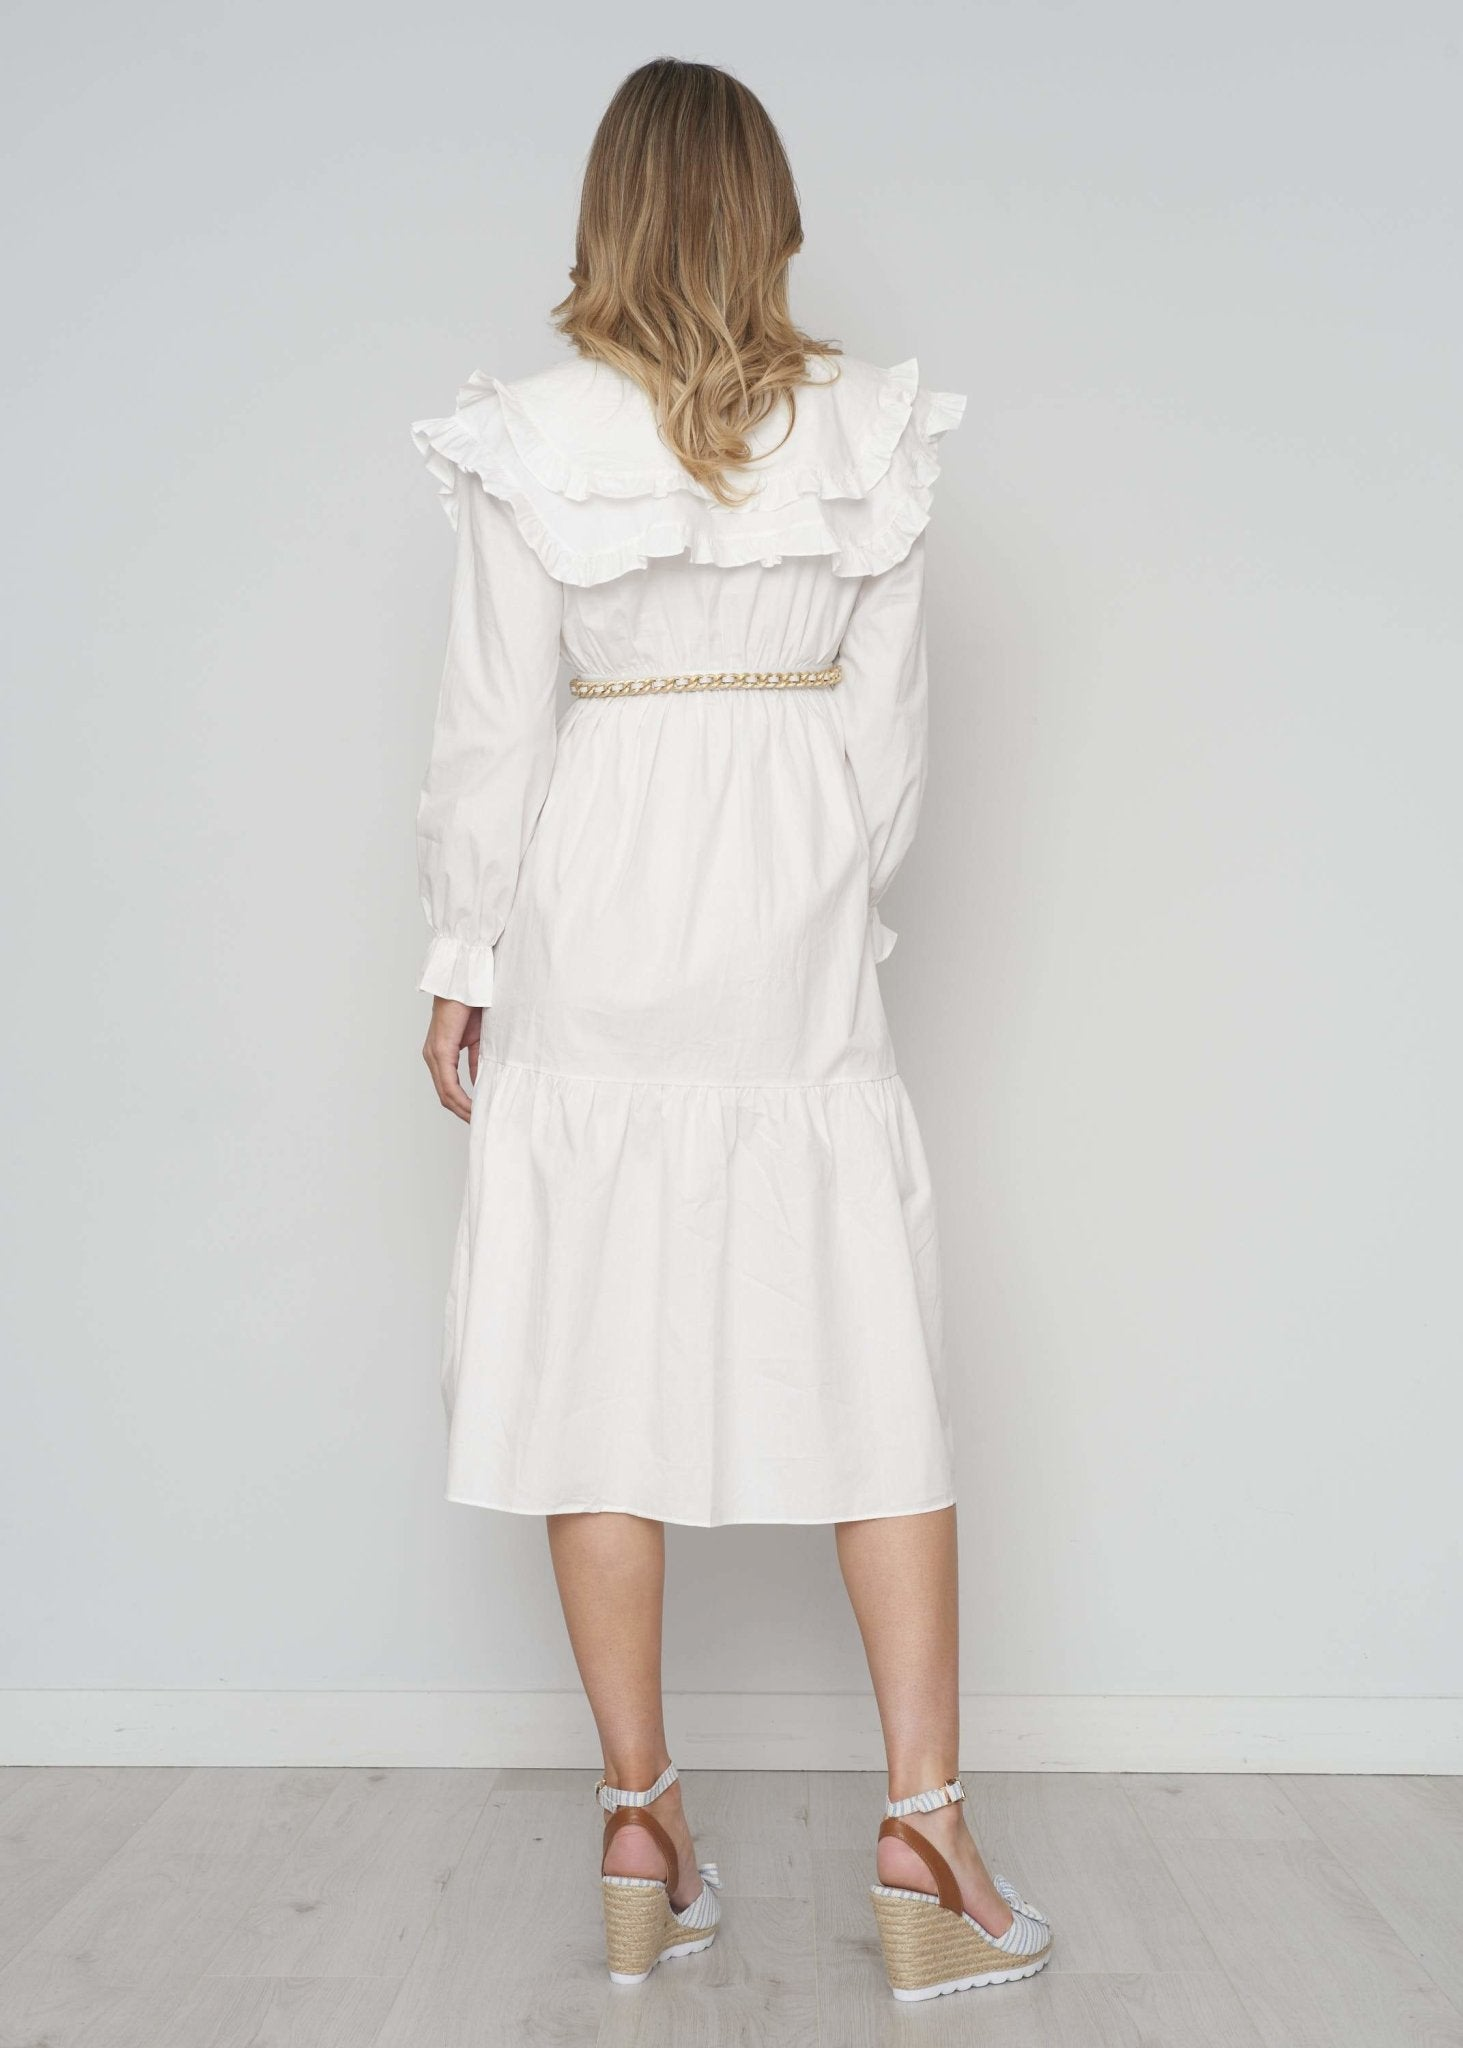 Lucia Double Collar Peplum Dress In White - The Walk in Wardrobe